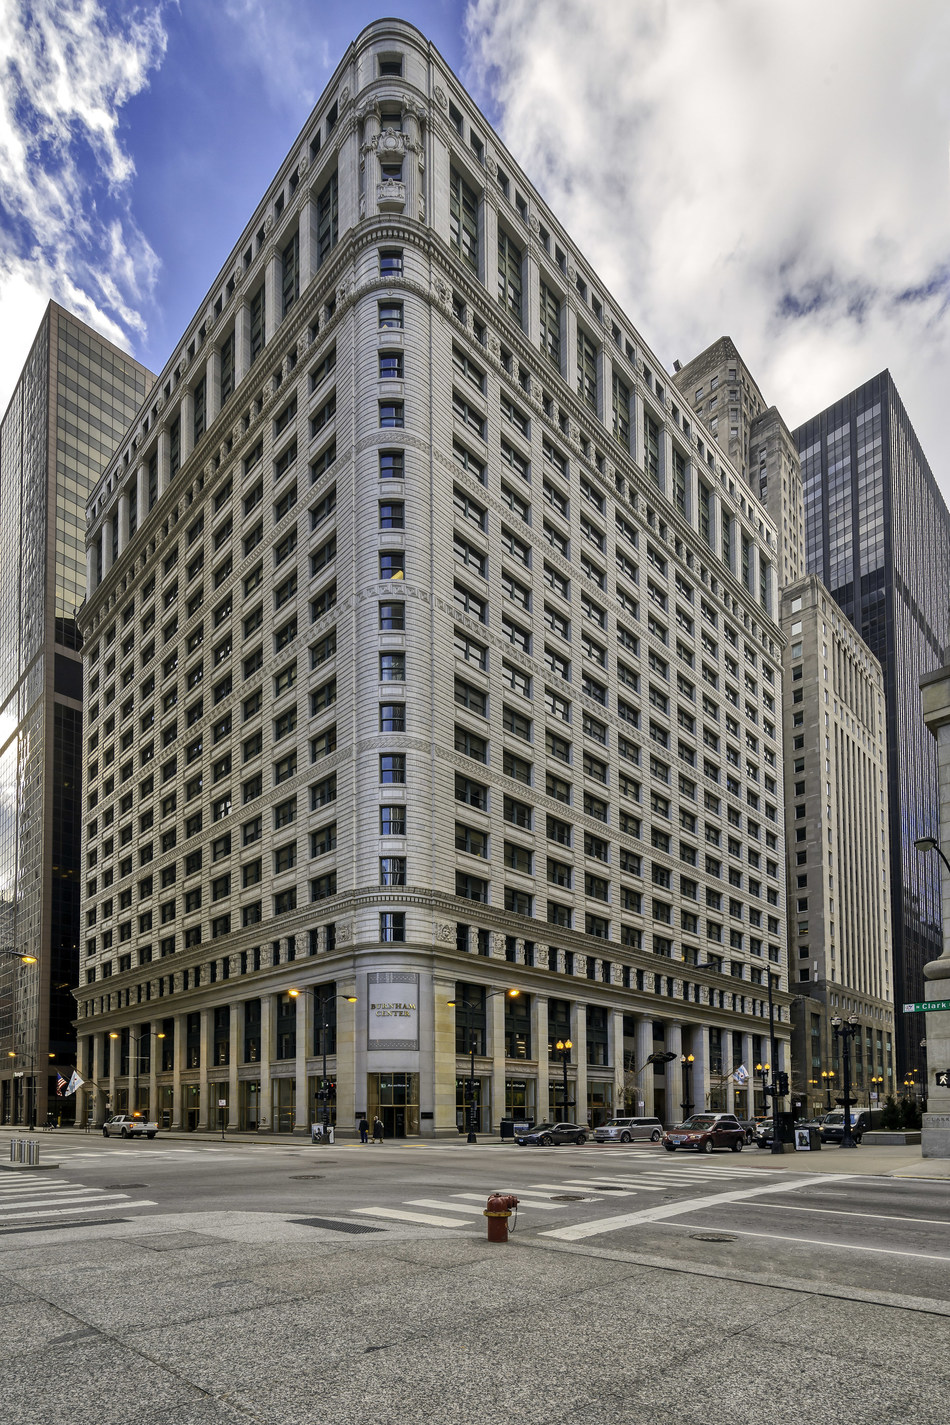 Chicago-based Golub & Company has acquired Burnham Center, located at 111 West Washington. The 22-story office tower completed in 1913 was the last building designed by famed architect and urban planner Daniel Burnham.